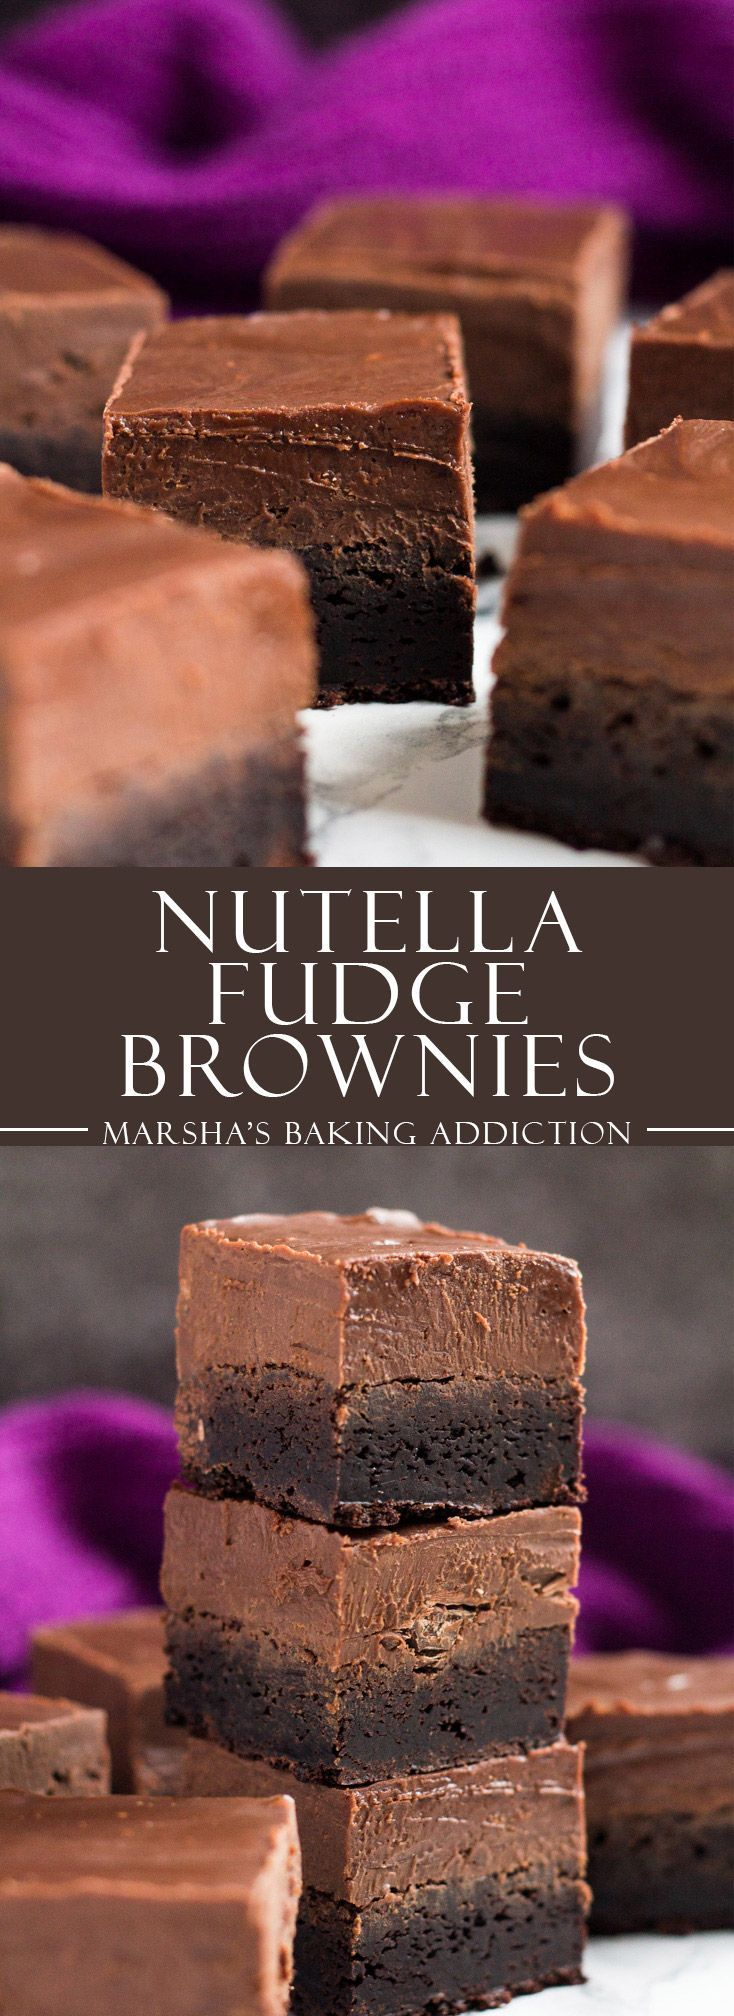 Nutella Fudge Brownies http://marshasbakingaddiction.com /marshasbakeblog/